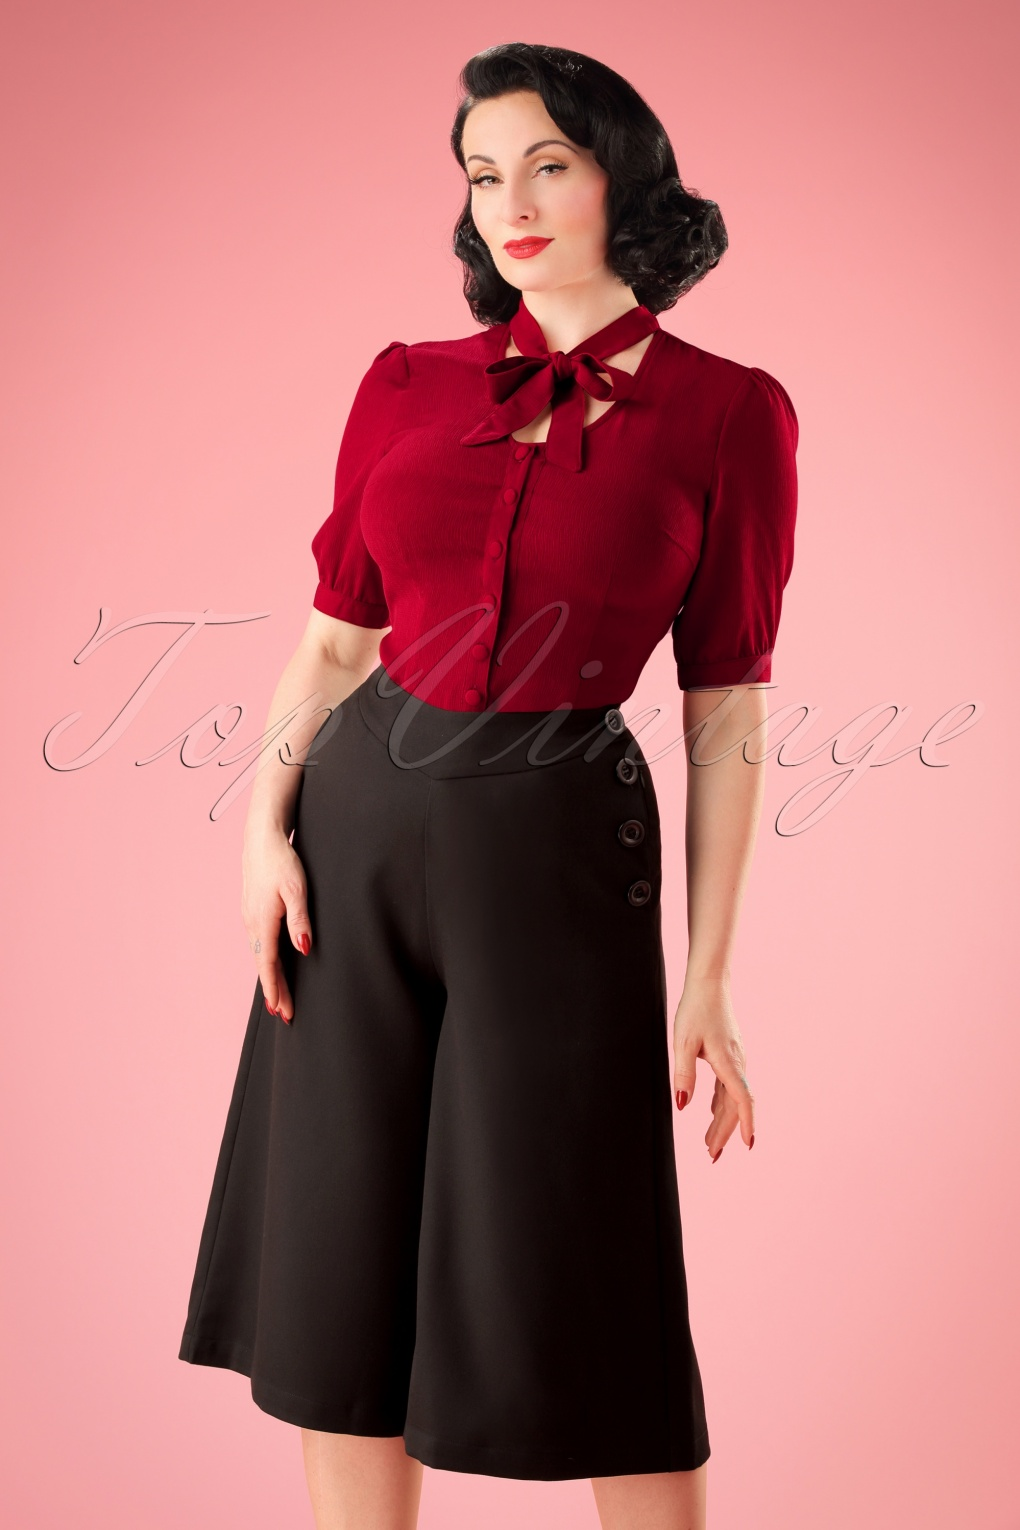 Vintage High Waisted Trousers, Sailor Pants, Jeans 30s Samantha Culottes in Black £35.23 AT vintagedancer.com